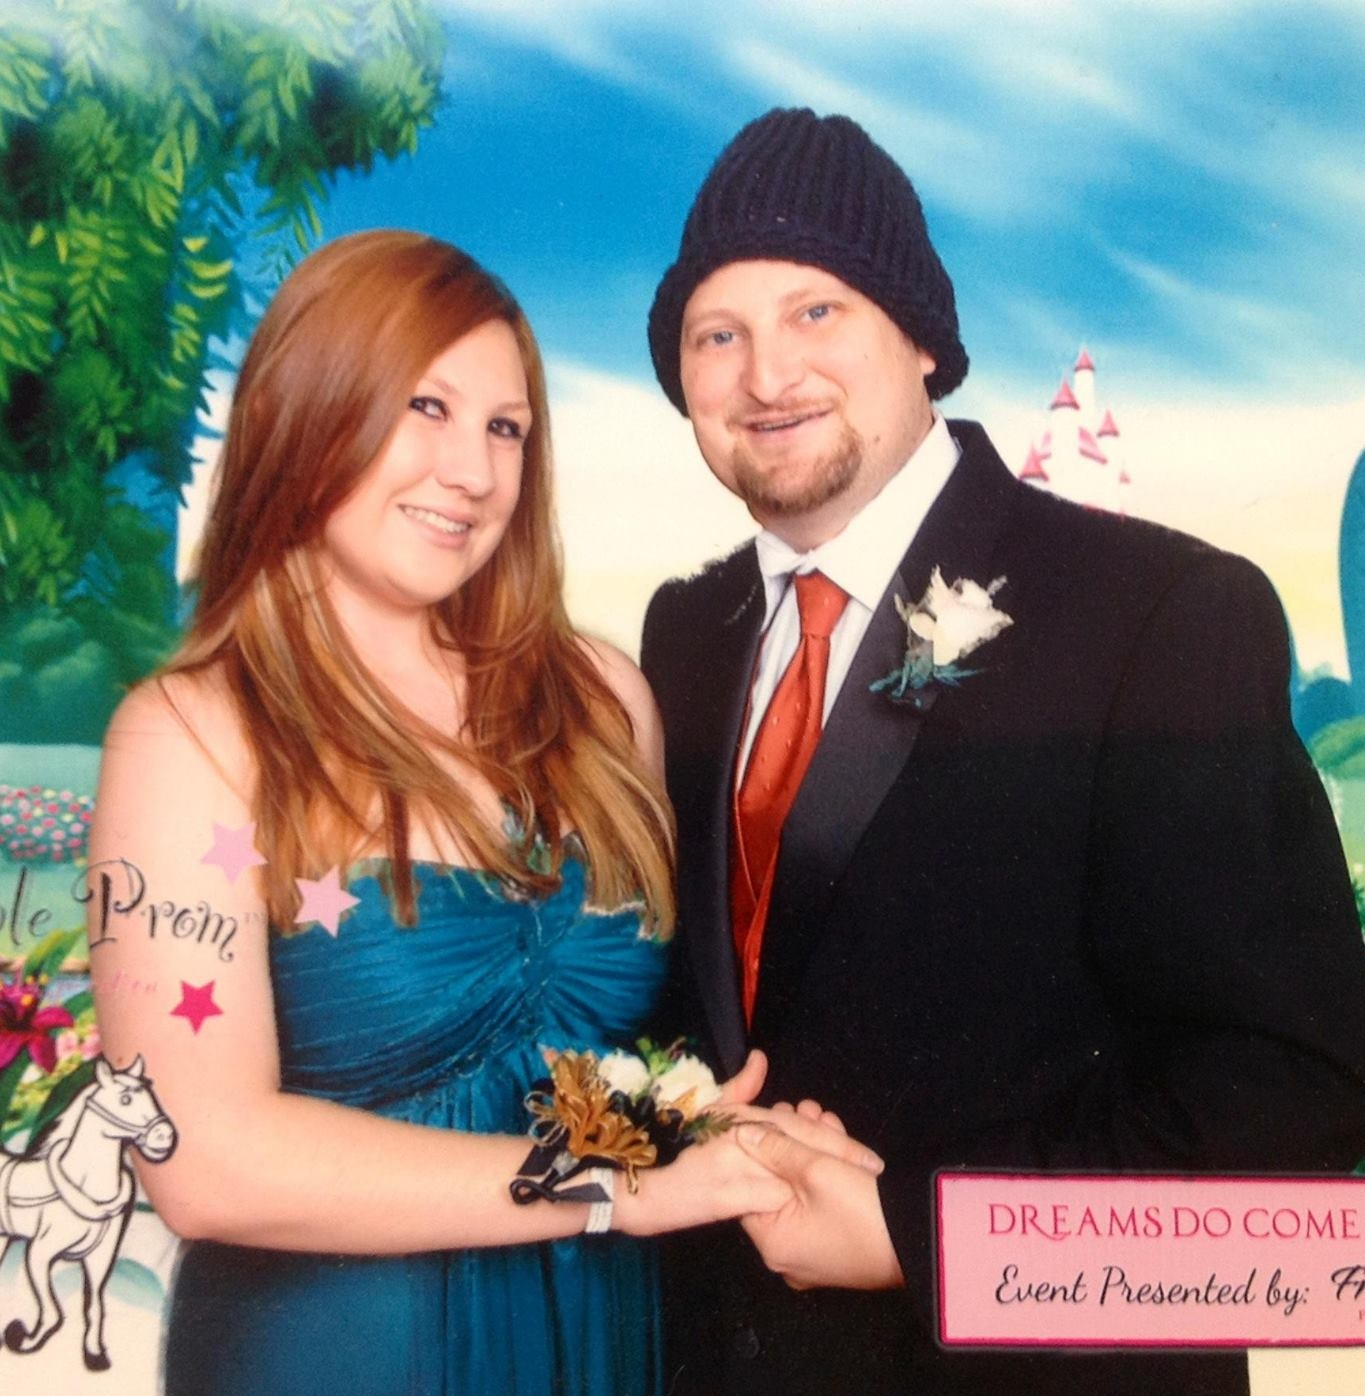 Chris (right) and sister Richelle at the Friends of Scott prom in 2012.